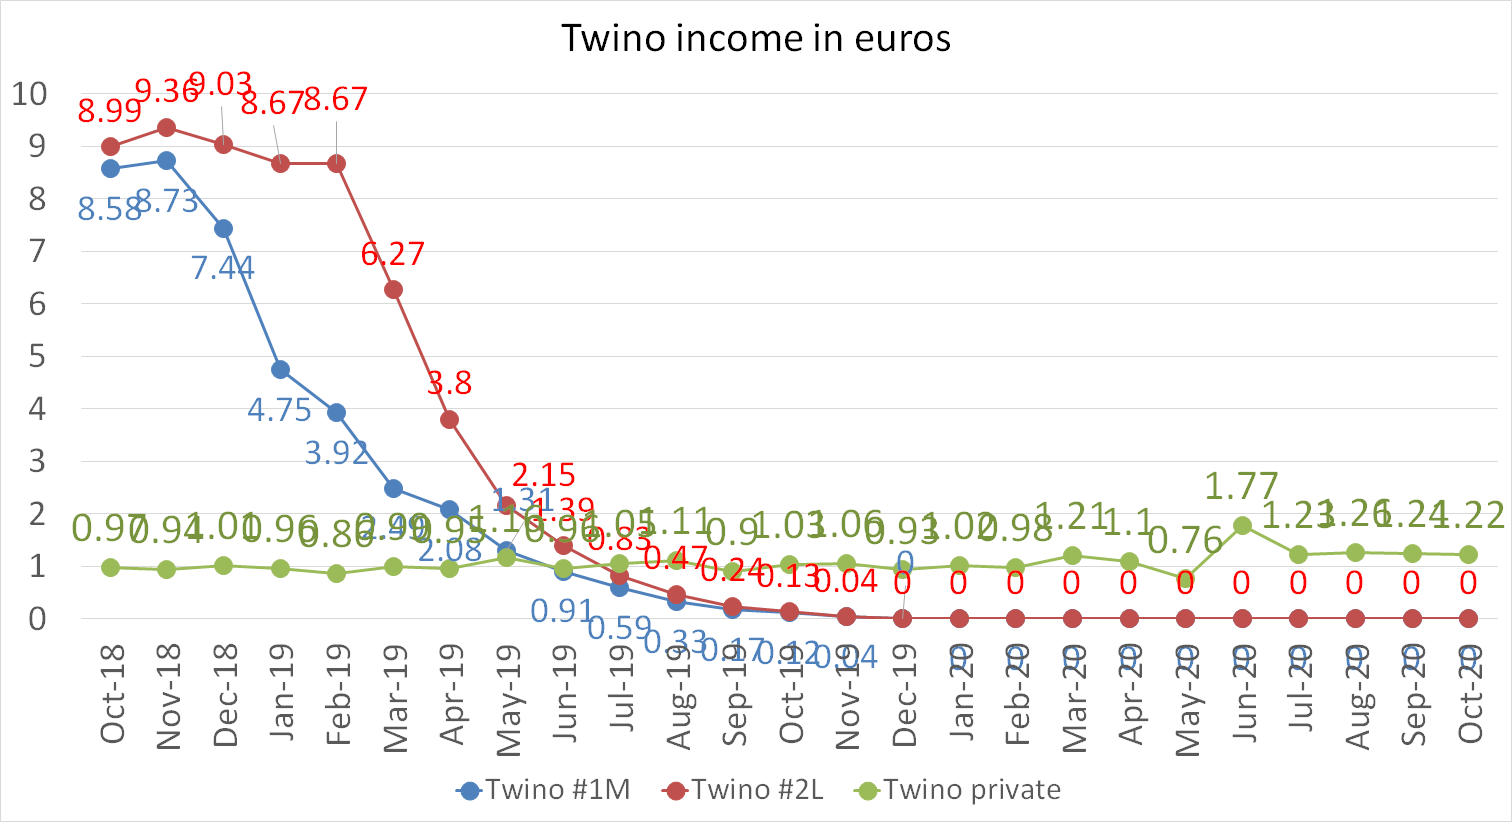 Twino income in euros october 2020